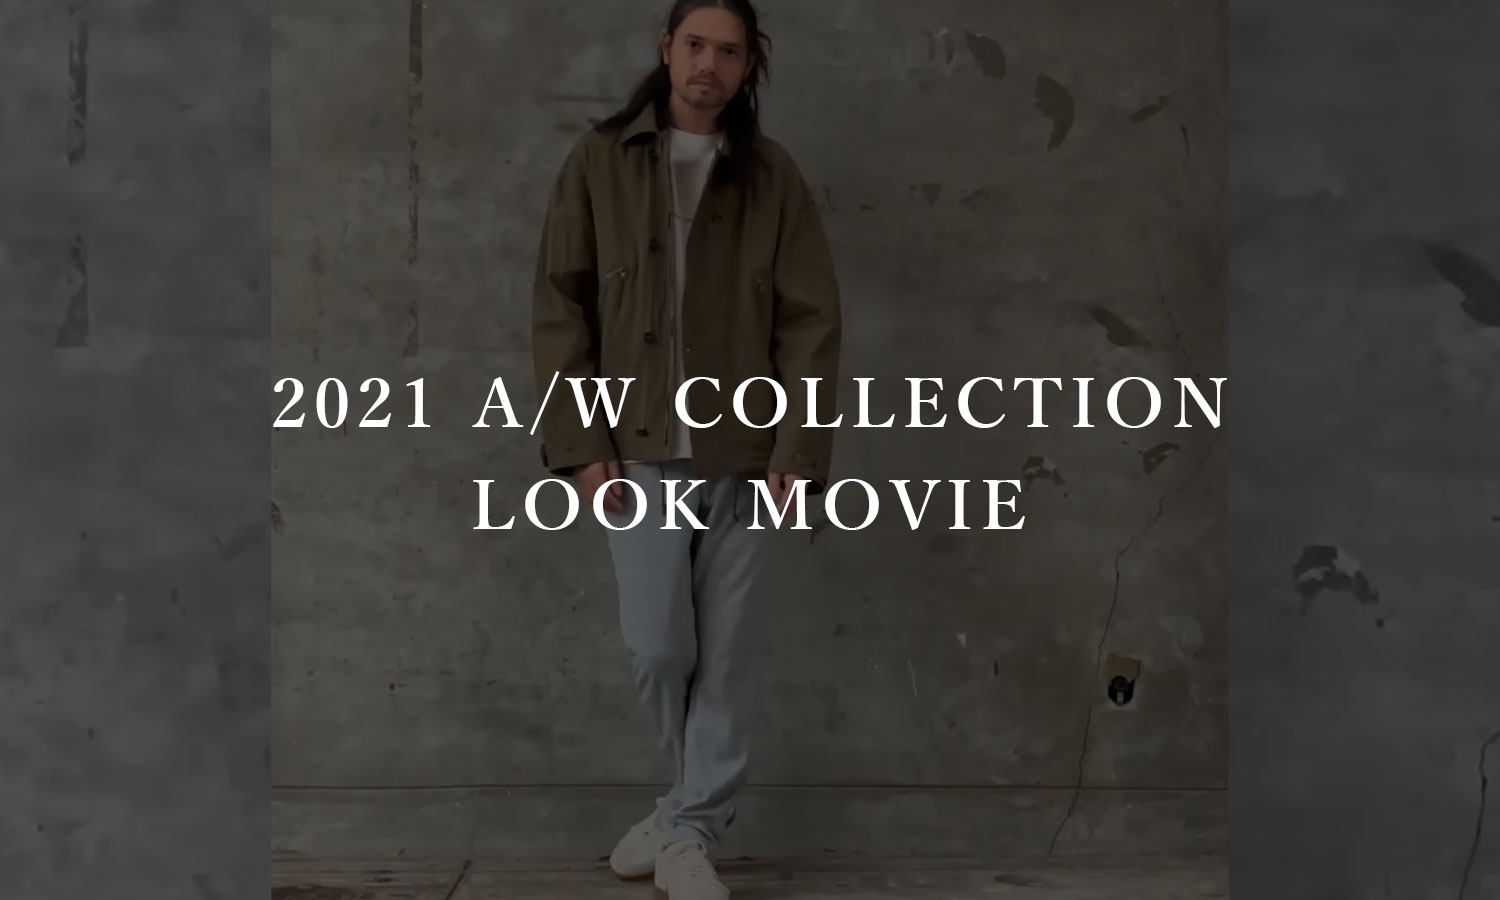 21AW LOOK MOVIE